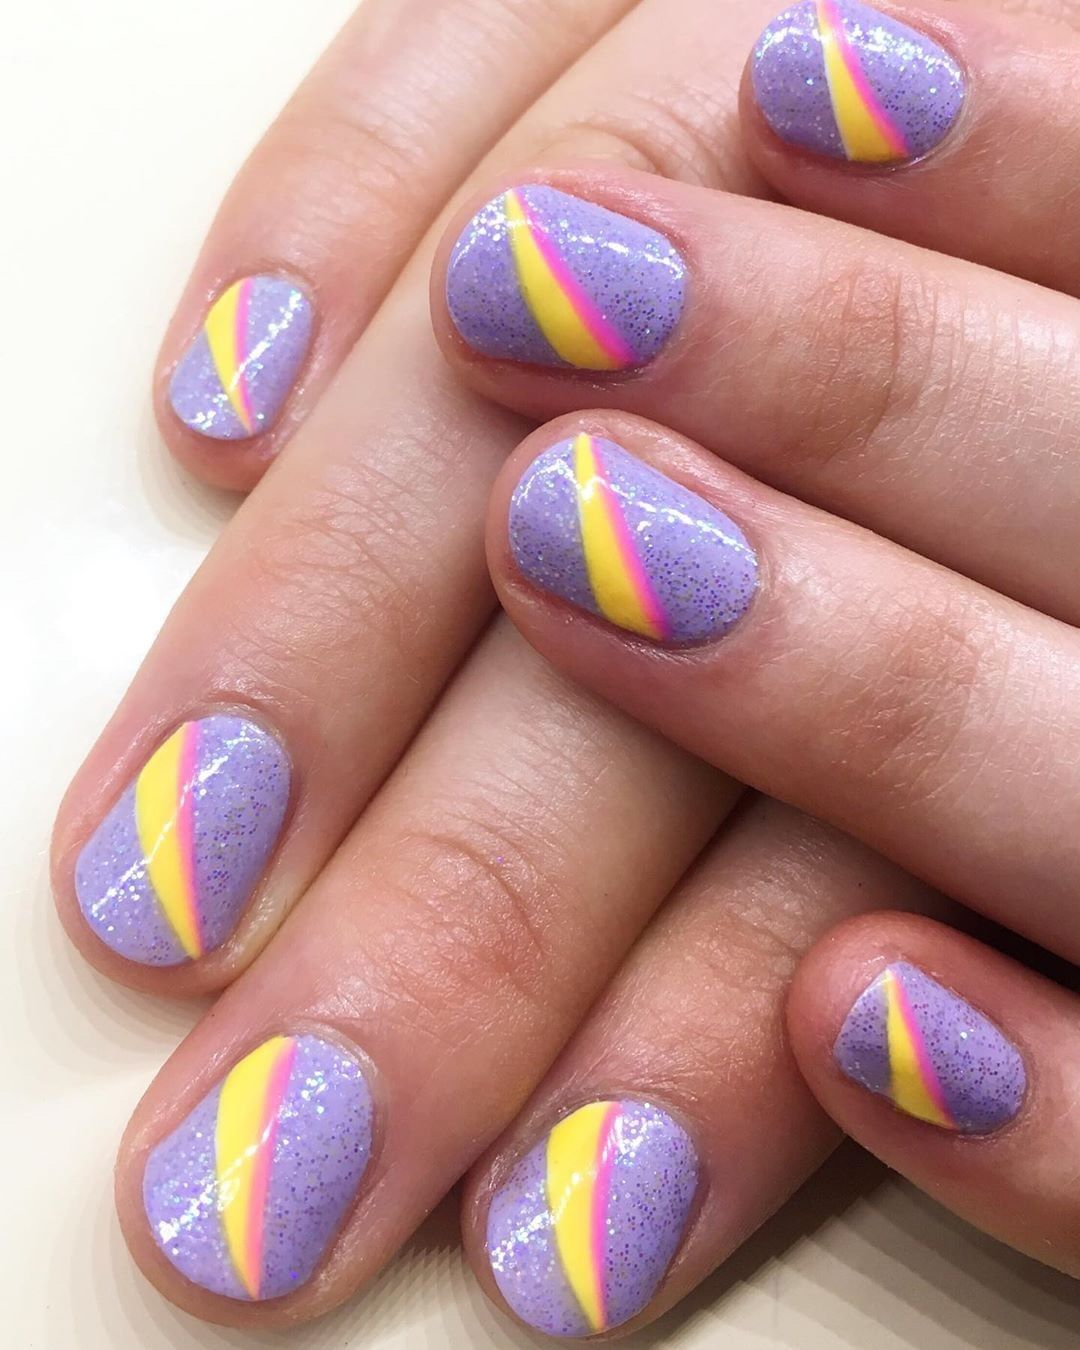 A new idea for your Easter manicure  rg  Shade: Gummi